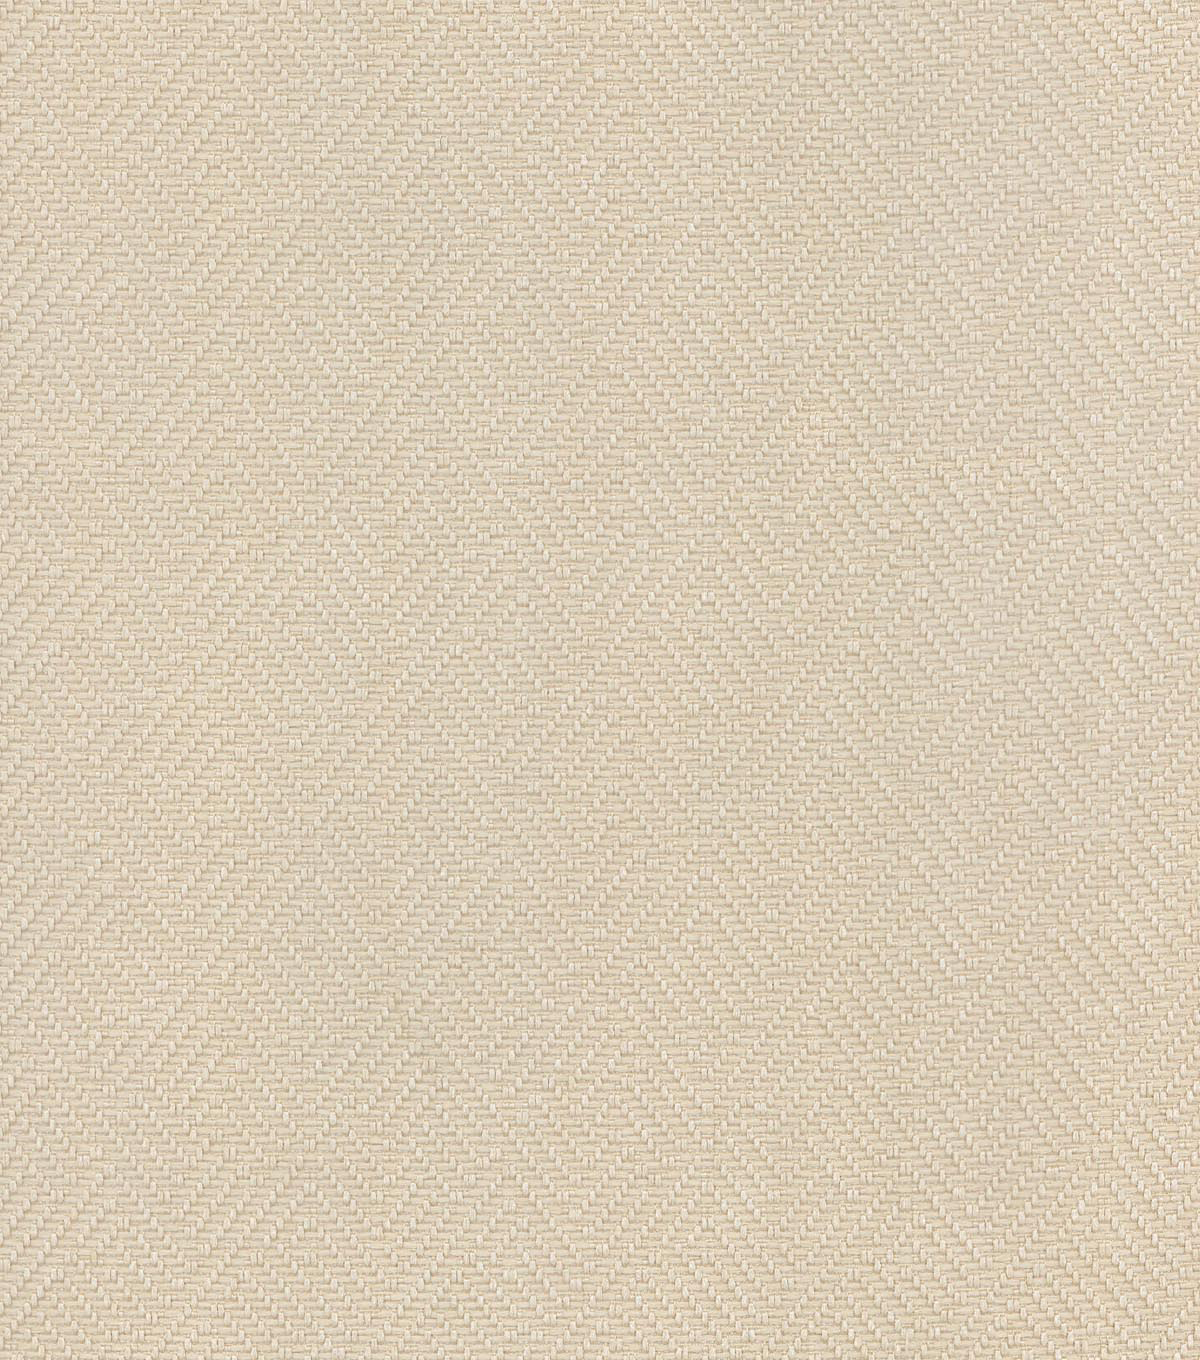 "Home Decor 8""x8"" Swatch Fabric-PK Lifestyles Basketry Dune"